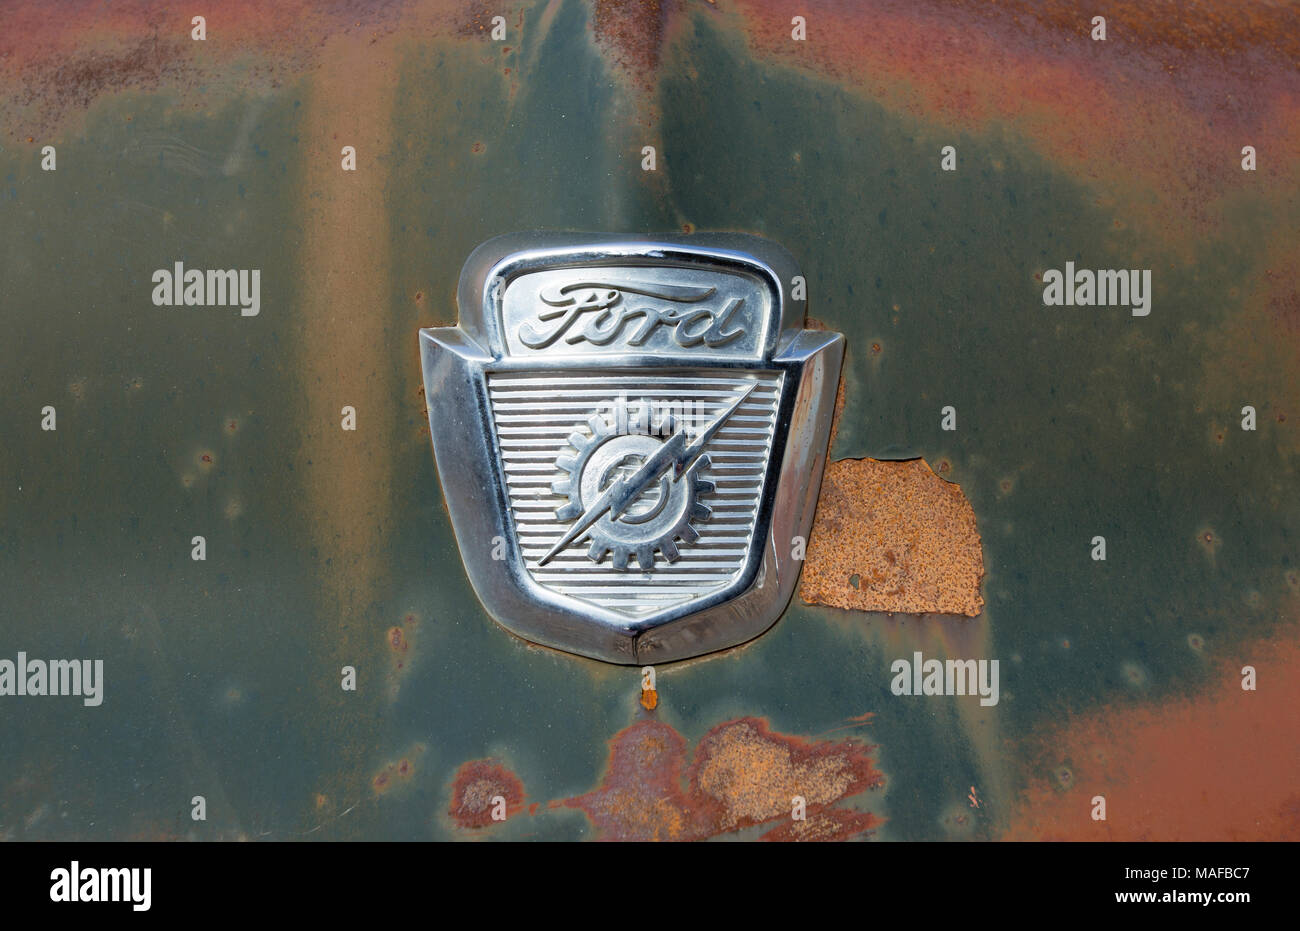 Ford Logo Stock Photos Ford Logo Stock Images Alamy